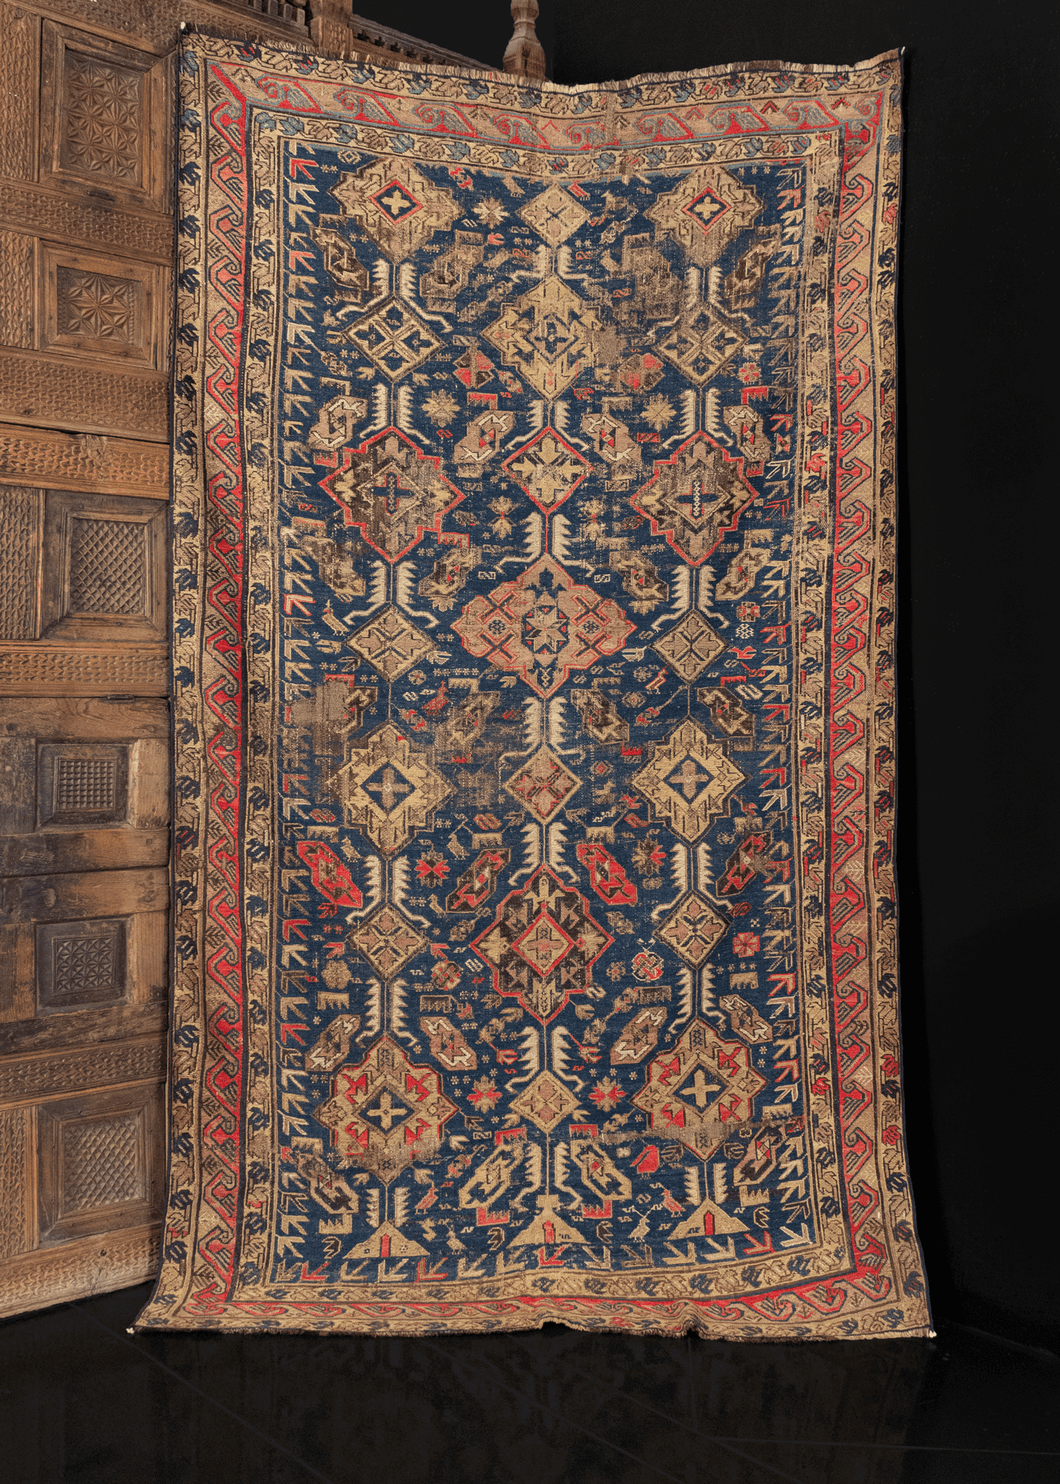 Caucasian Soumak rug with lozenge and diamond pattern on indigo blue ground. in fair condition with some wear